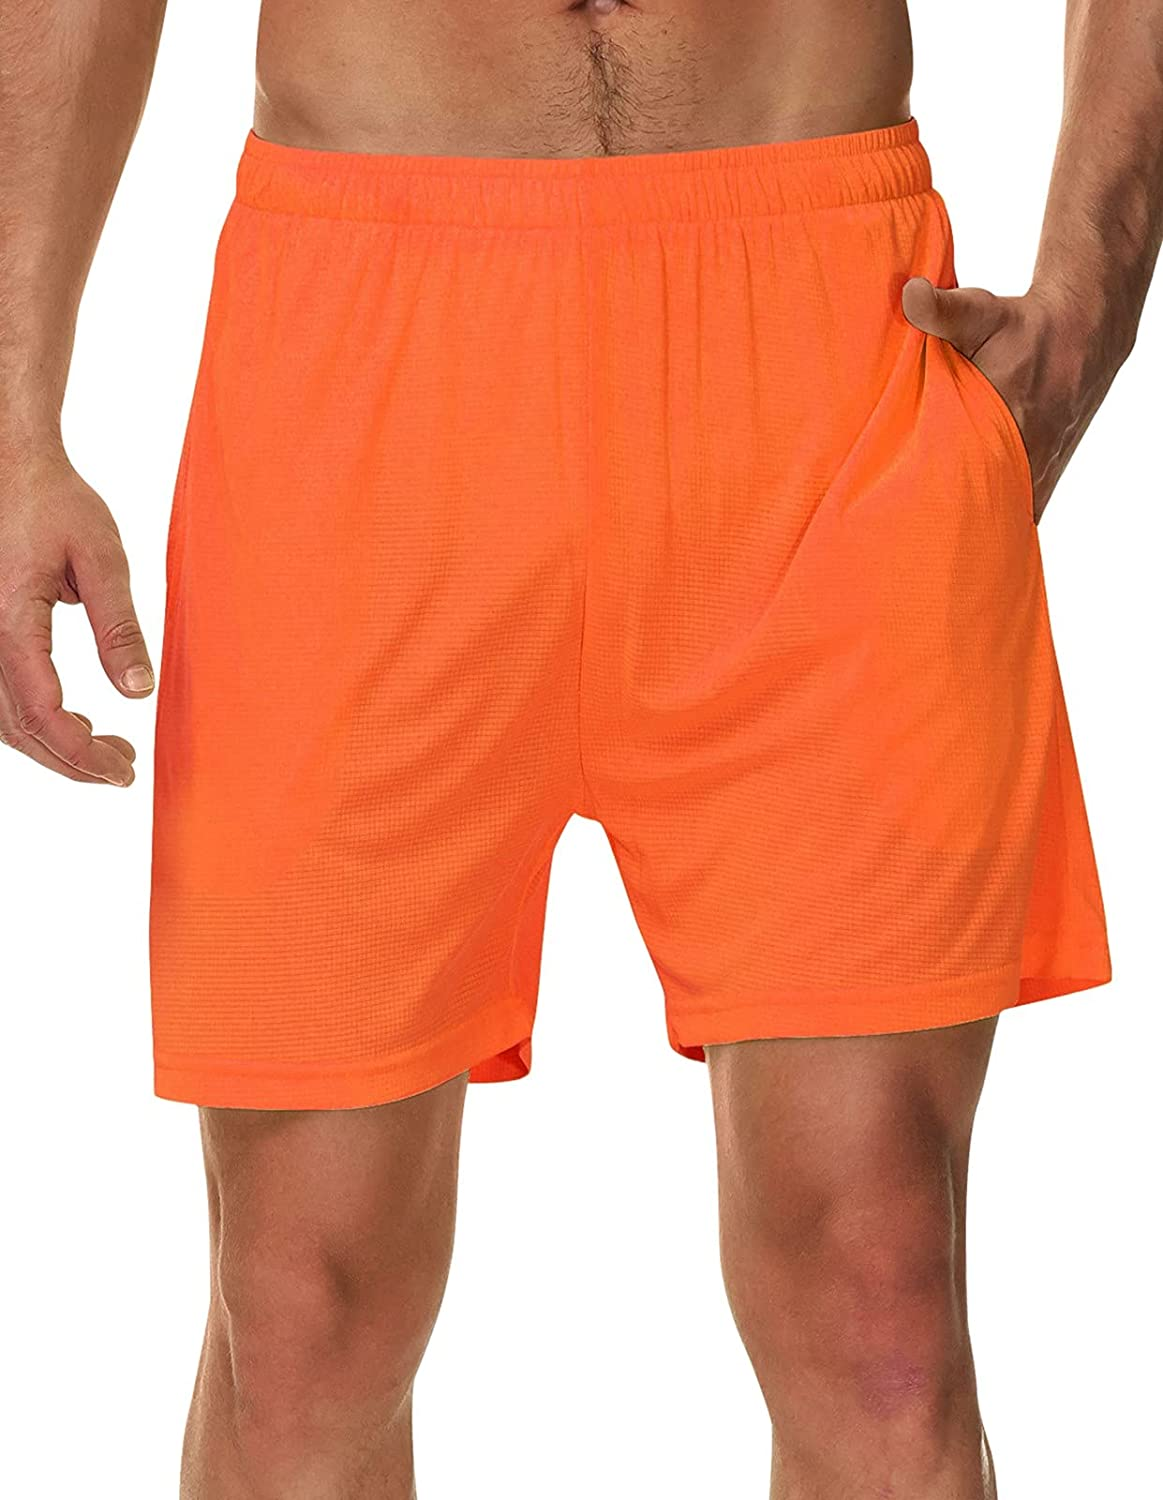 SPECIALMAGIC Men's Running Shorts 5 Inch Neon Lightweight Workout Gym Soccer Tennis Athletic Shorts with Linner Pockets: Clothing